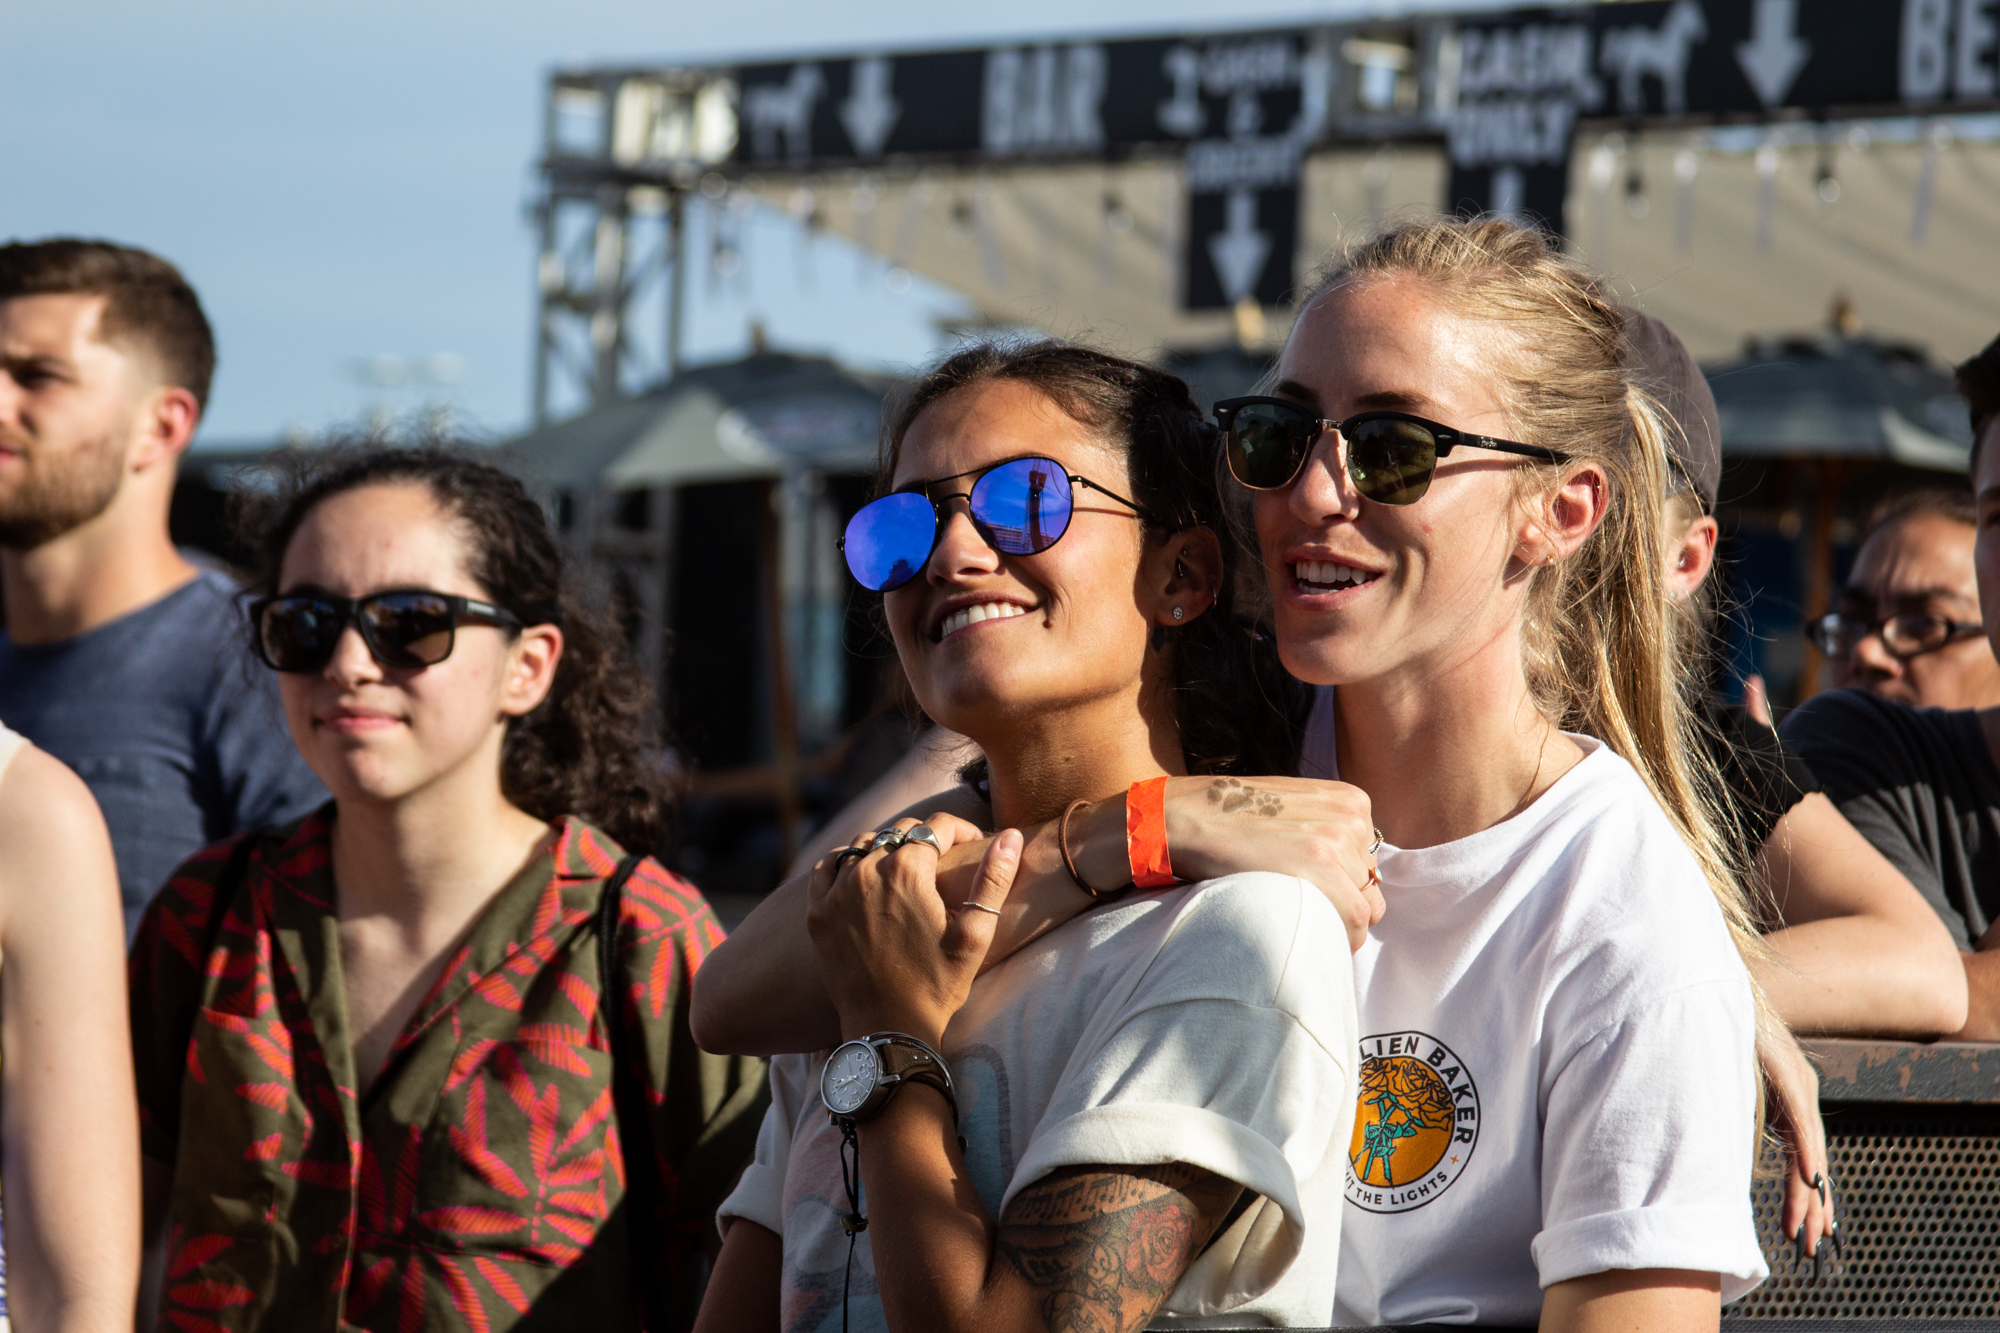 Hunter Stones (left) and Alexa Gruschow (right) watch Turnover from the crowd at Shadow of the City in Asbury Park, NJ on August 25, 2018.